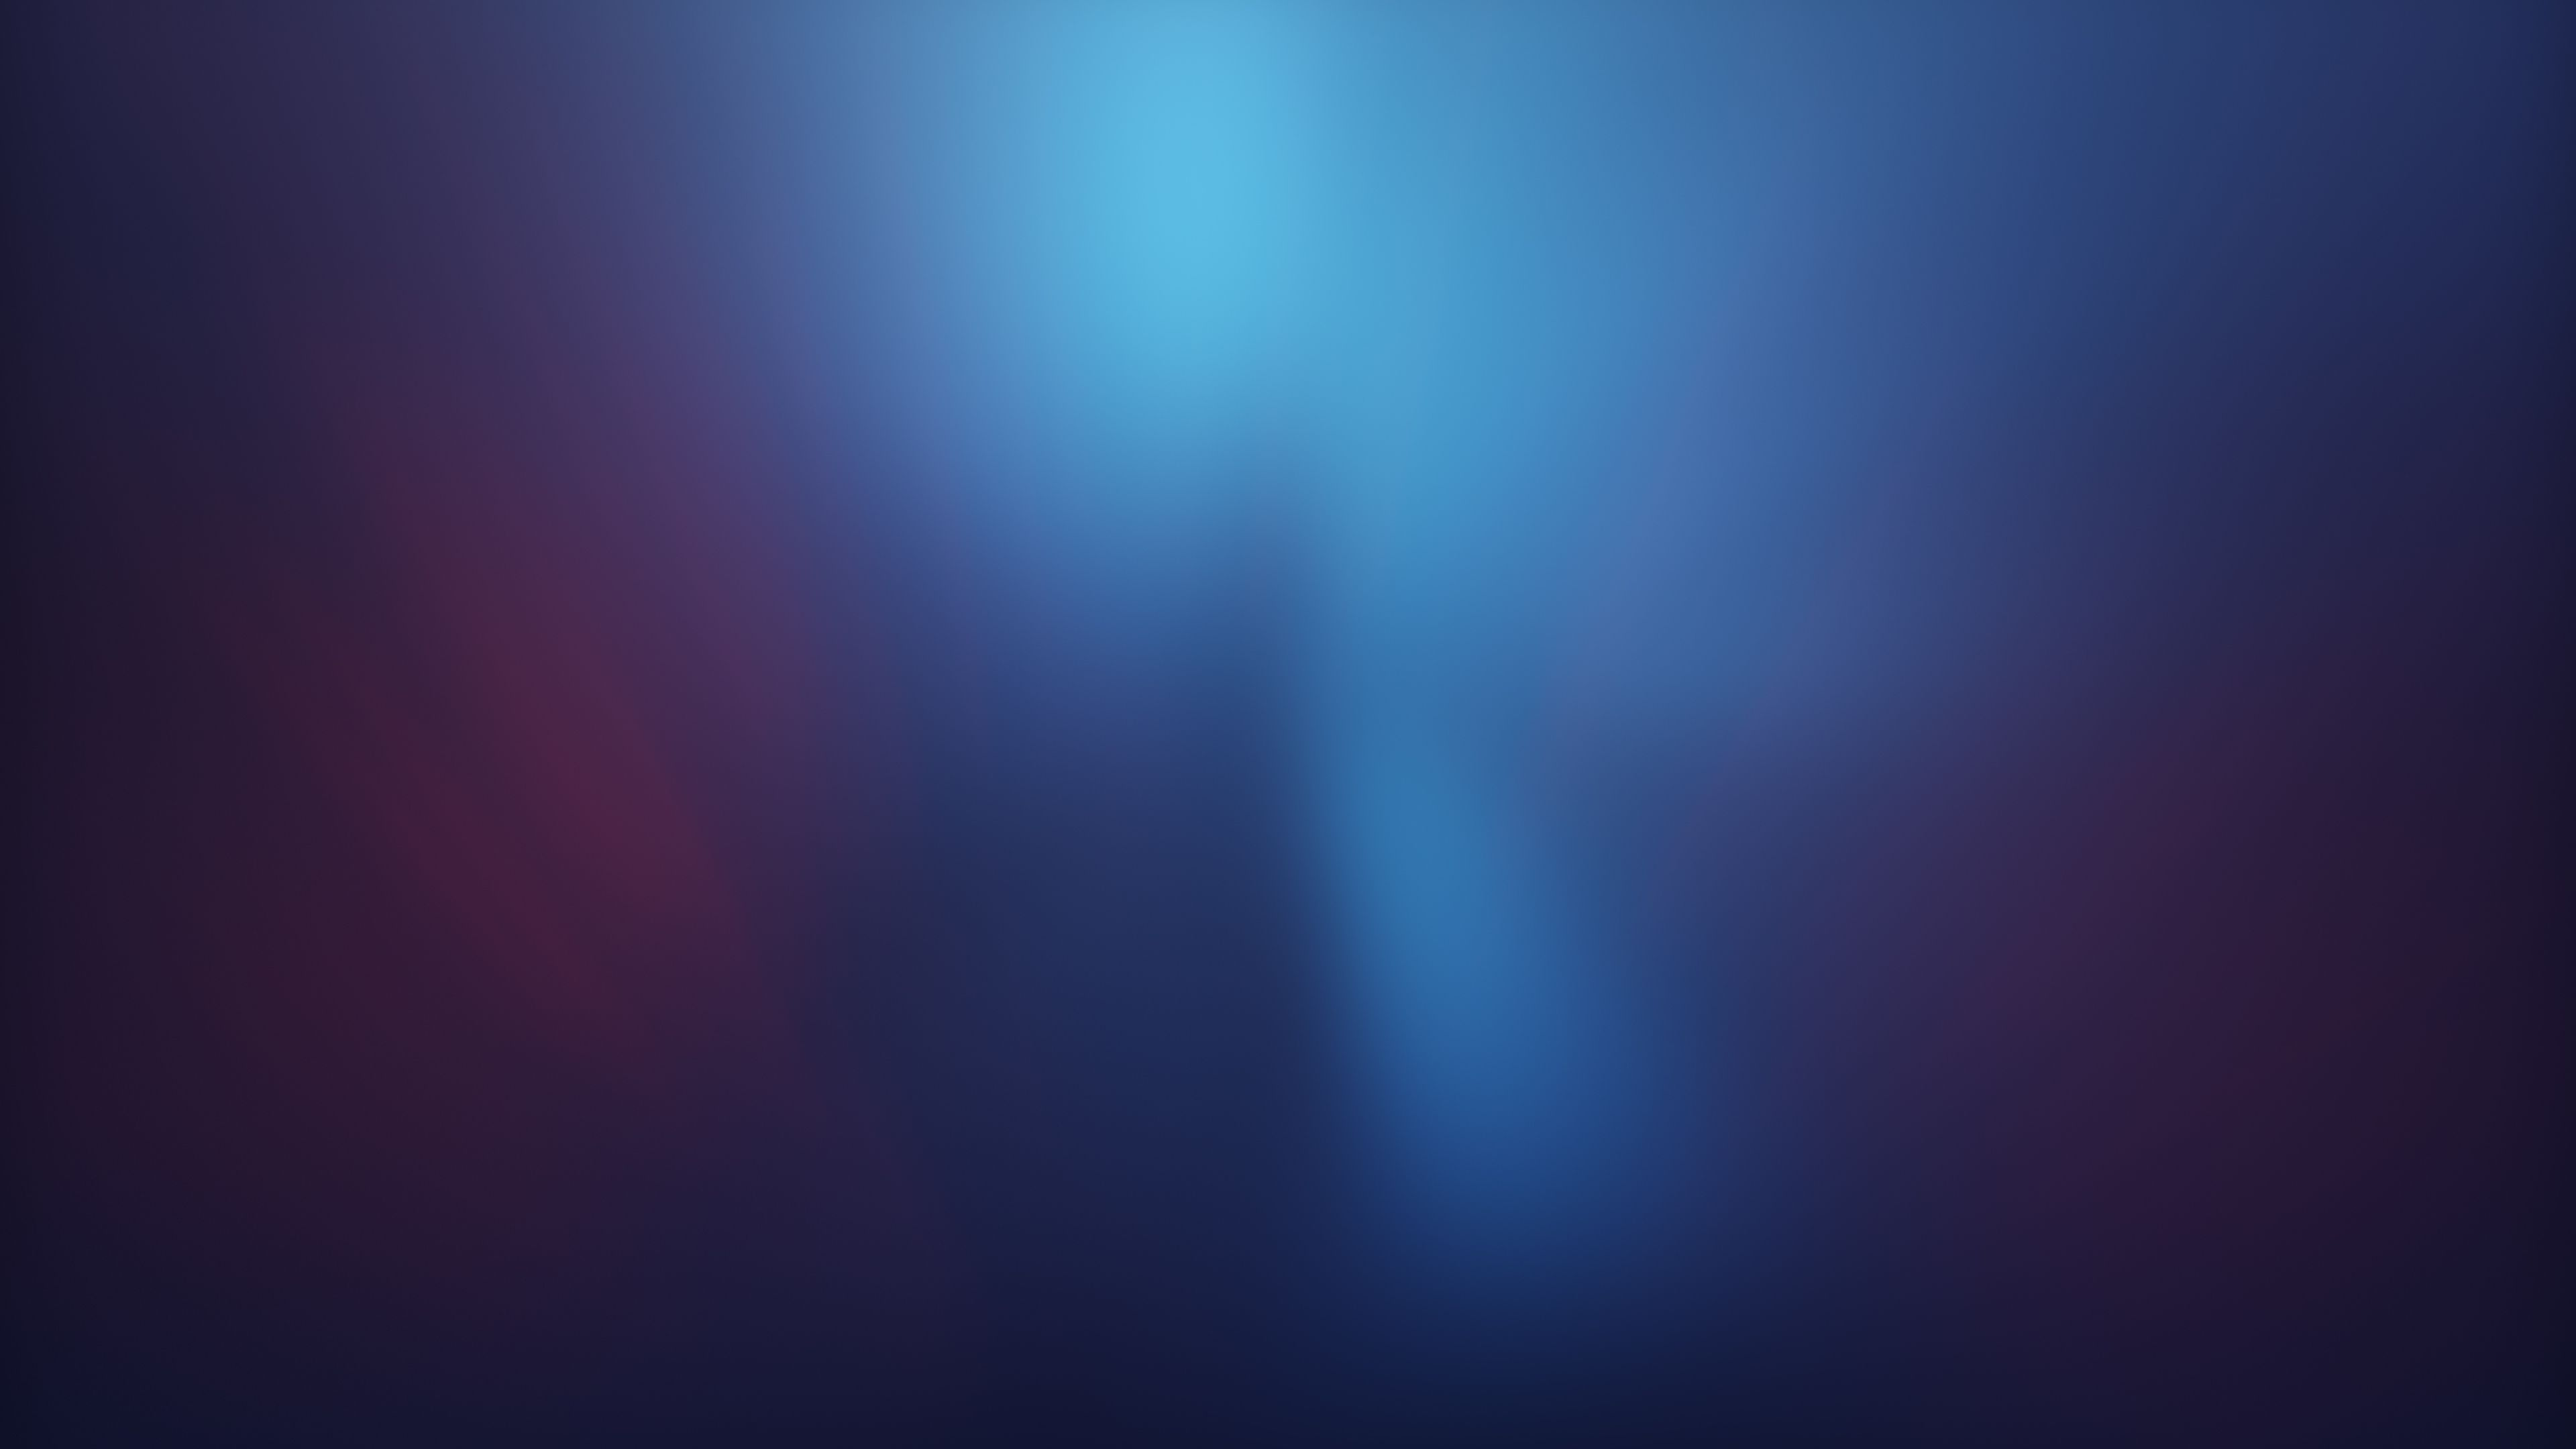 Wallpaper 4k Abstract Minimal Blur 4k 4k Wallpapers Abstract